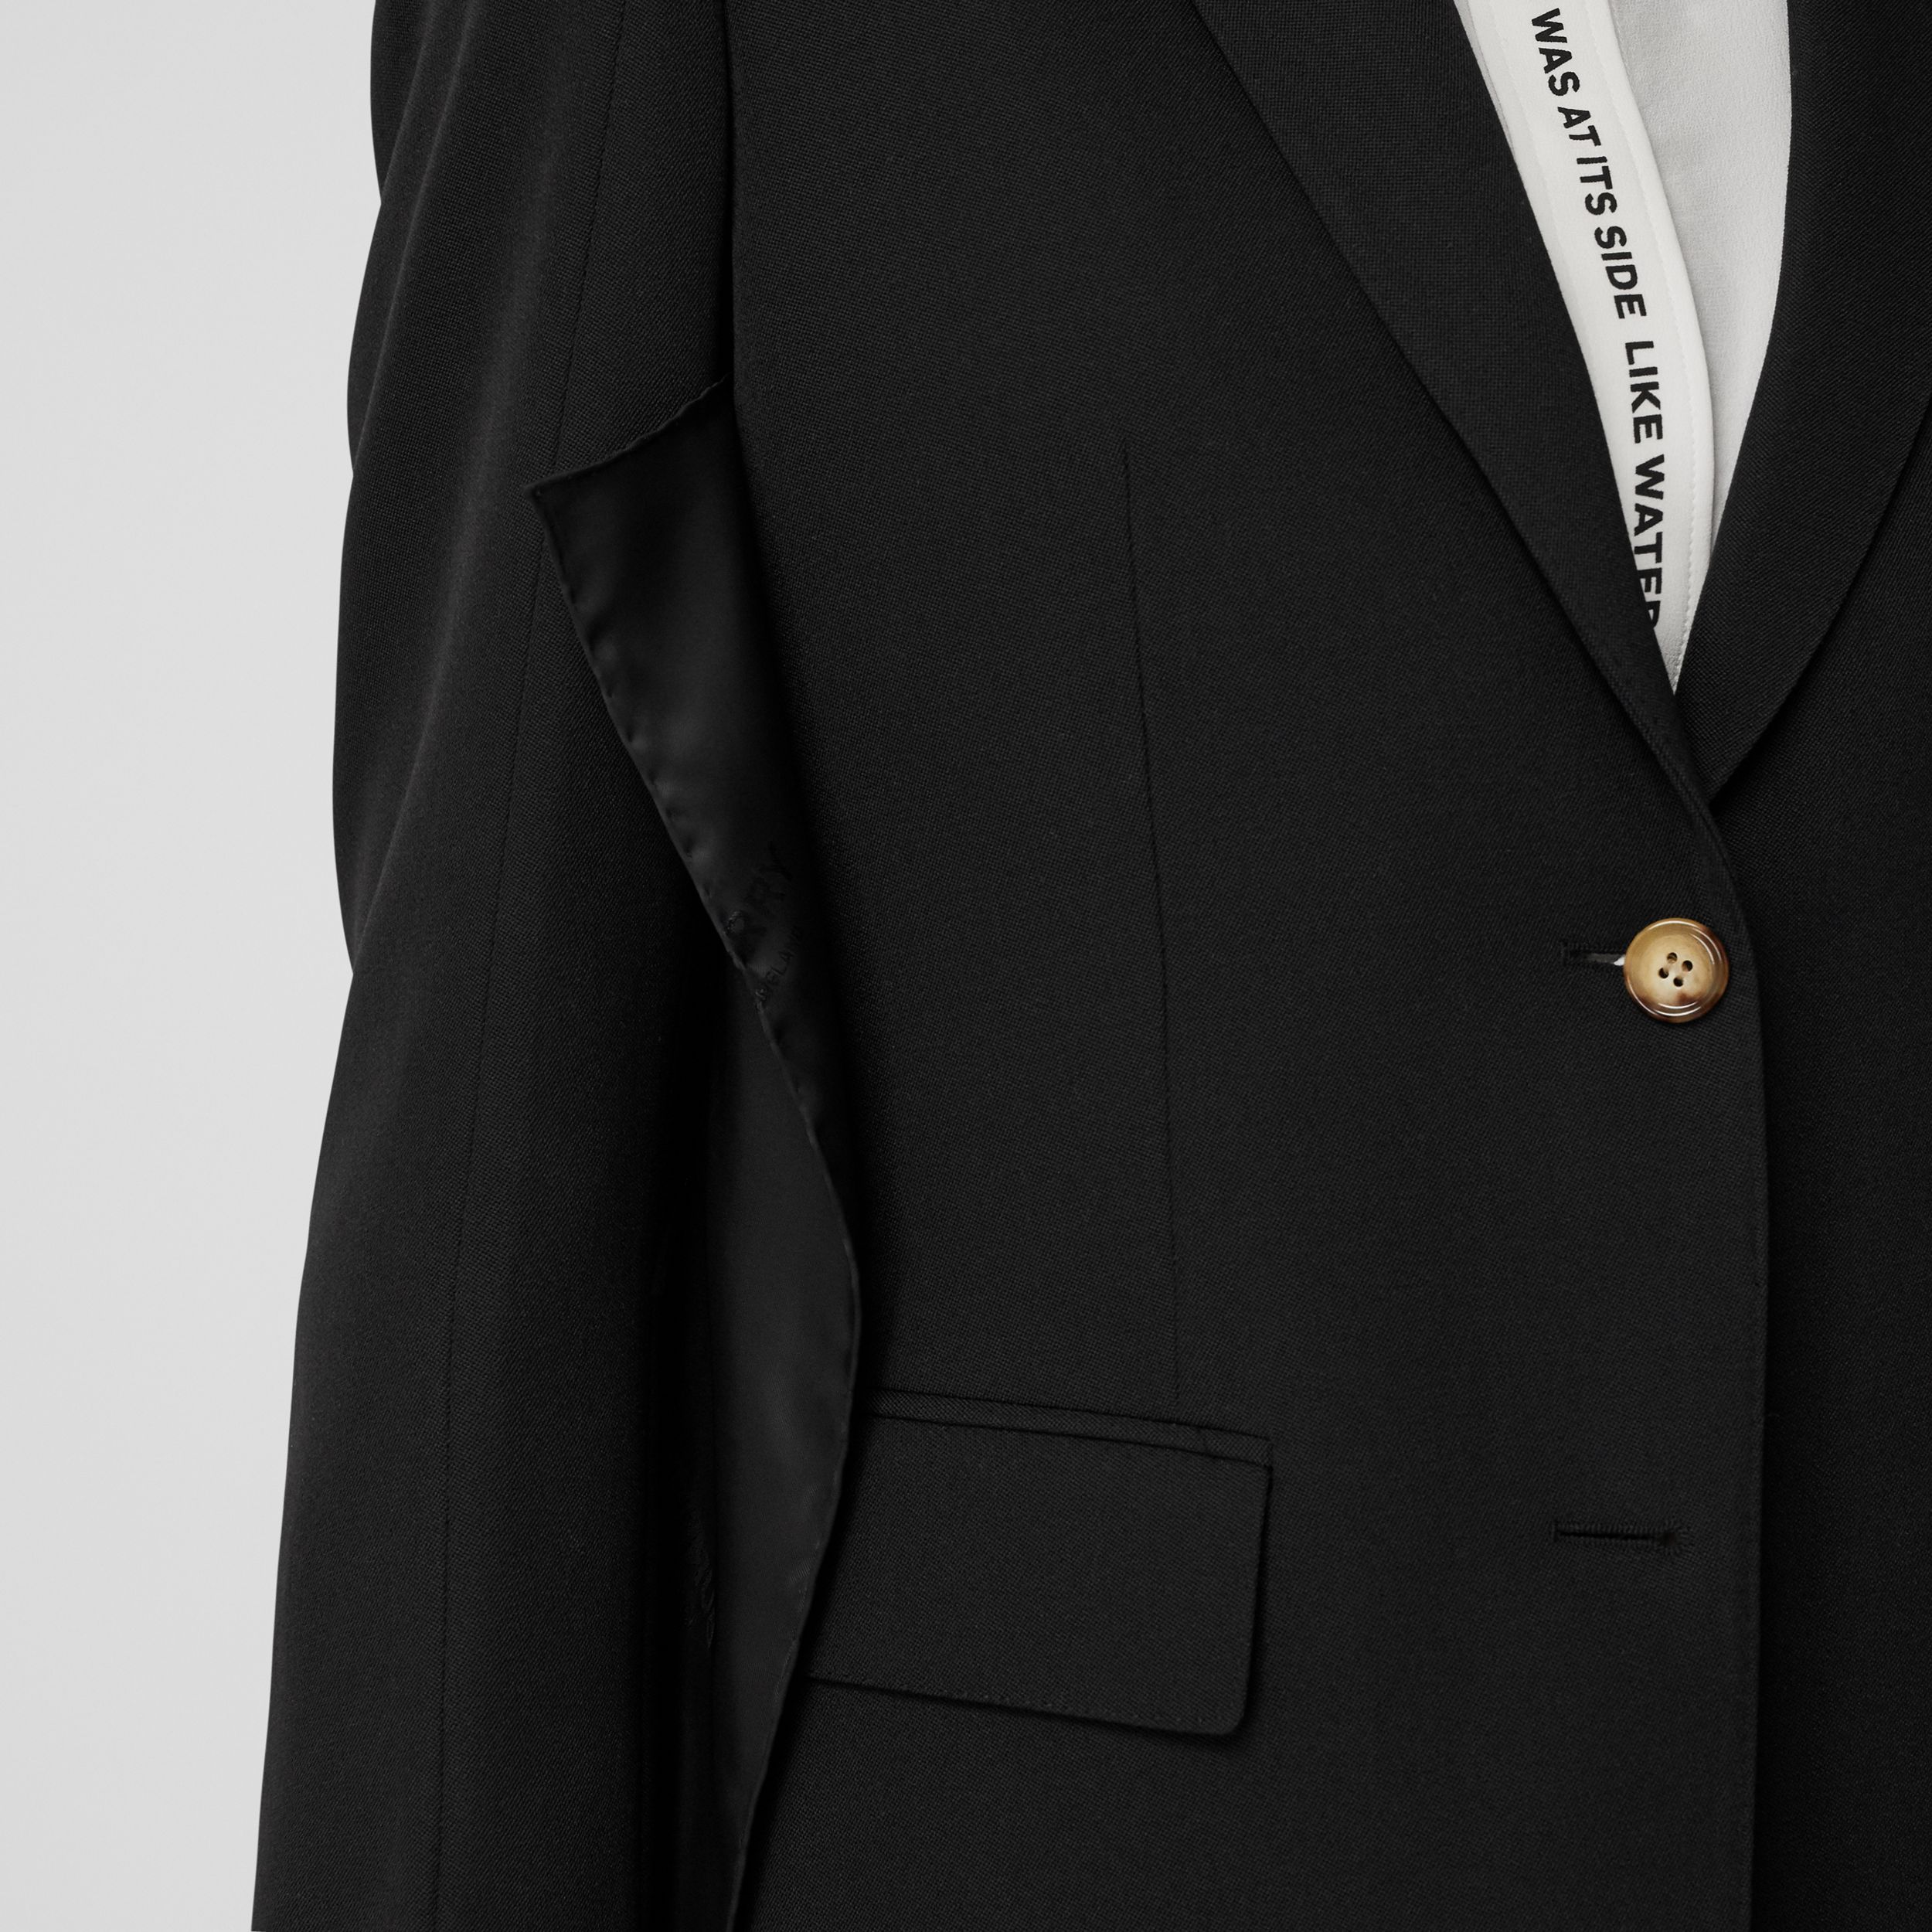 Logo Panel Detail Wool Tailored Jacket in Black - Women | Burberry - 2